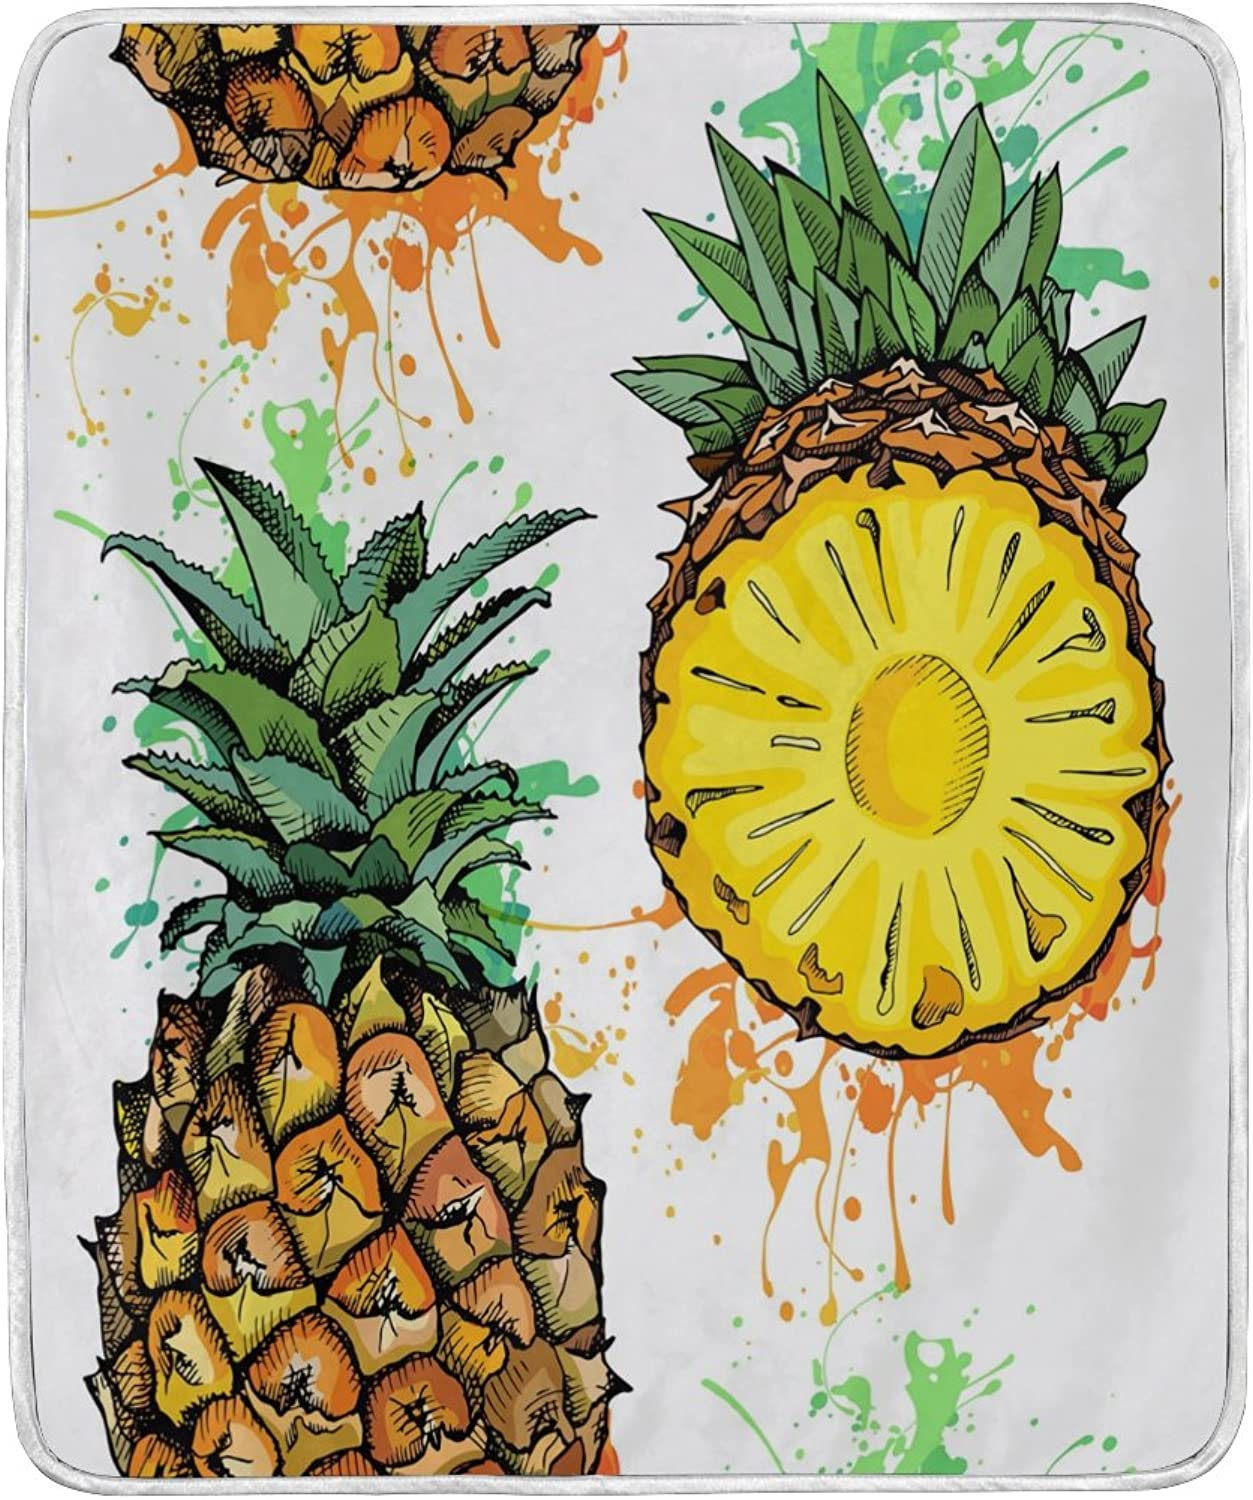 ALAZA Home Decor Watercolor Pineapple Fruit Blanket Soft Warm Blankets for Bed Couch Sofa Lightweight Travelling Camping 60 x 50 inch Throw Size for Kids Boys Women